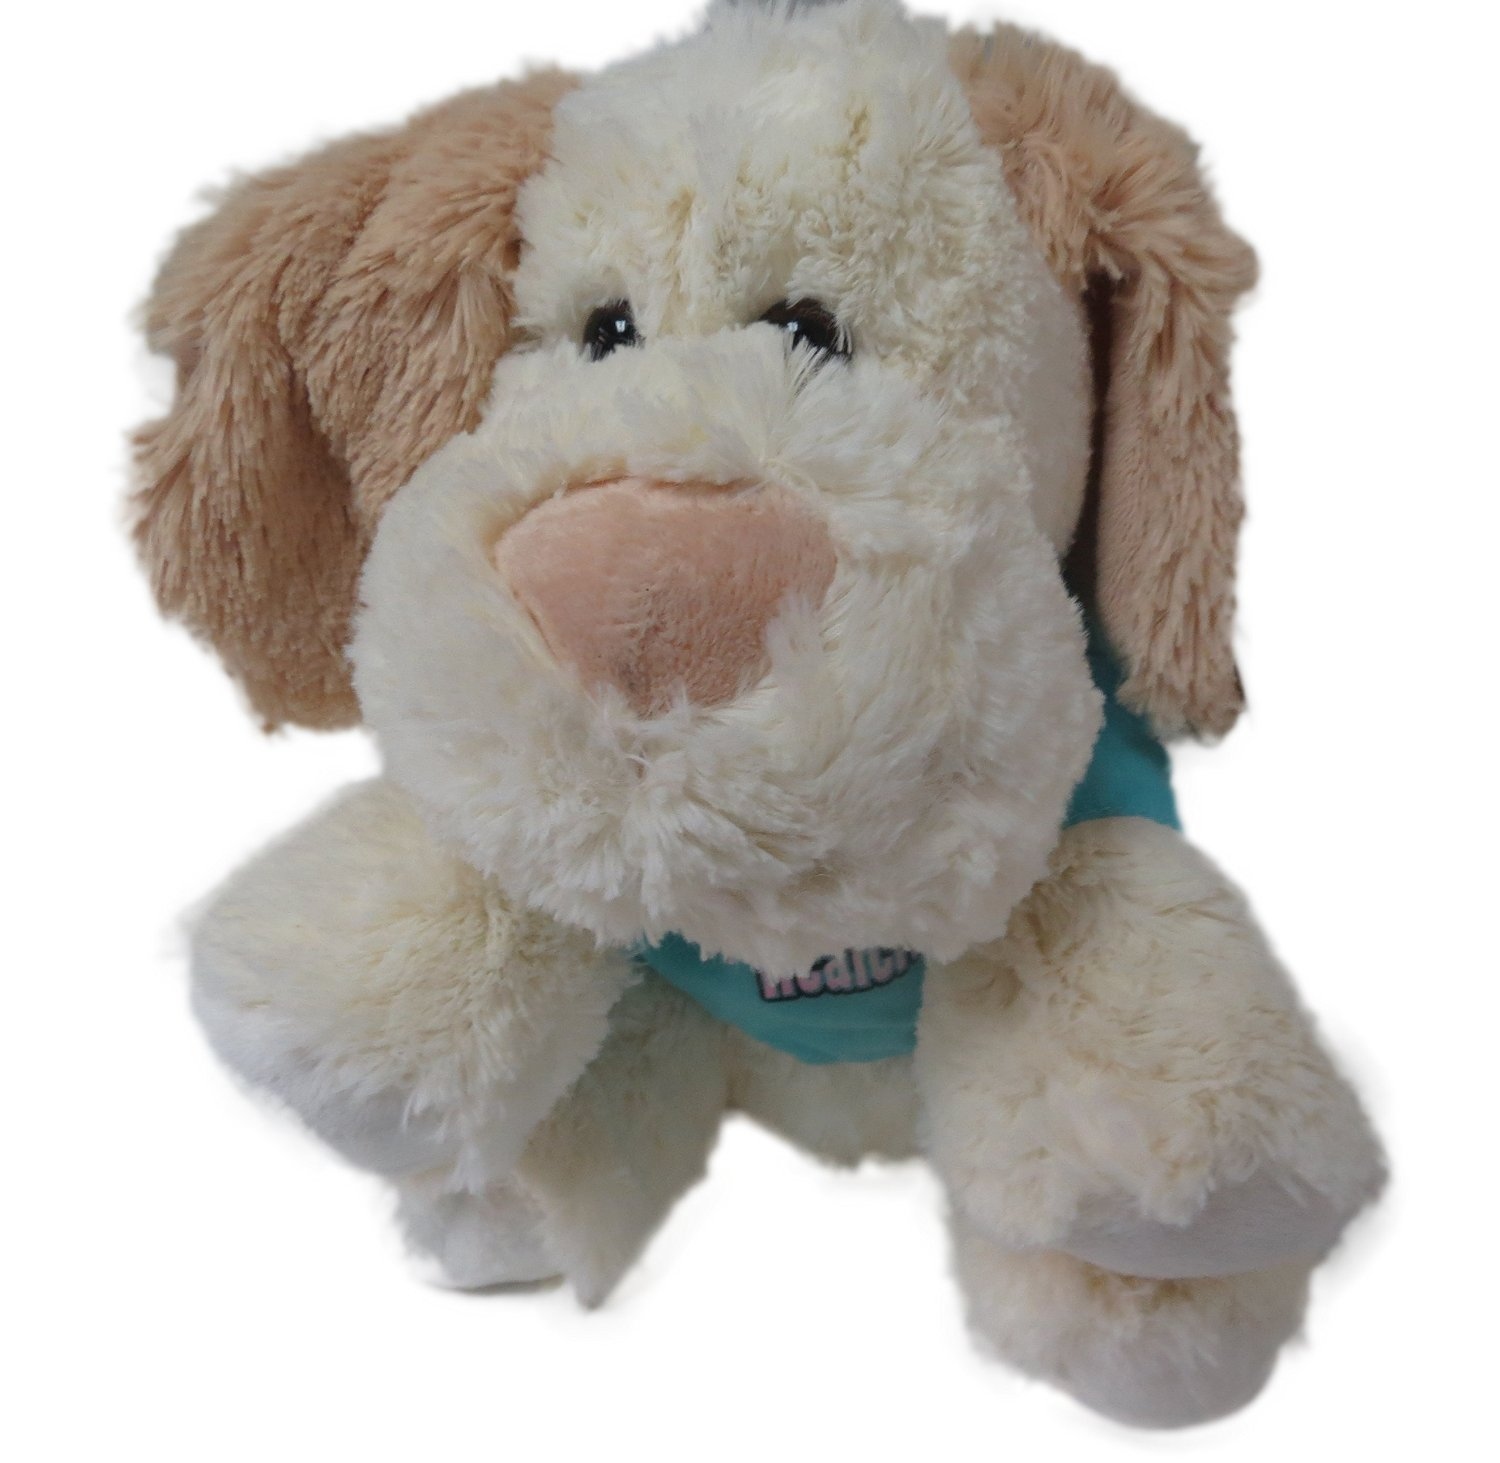 Bedside Healers Healing Plush Animals Heart Nosed Puppy W Blue